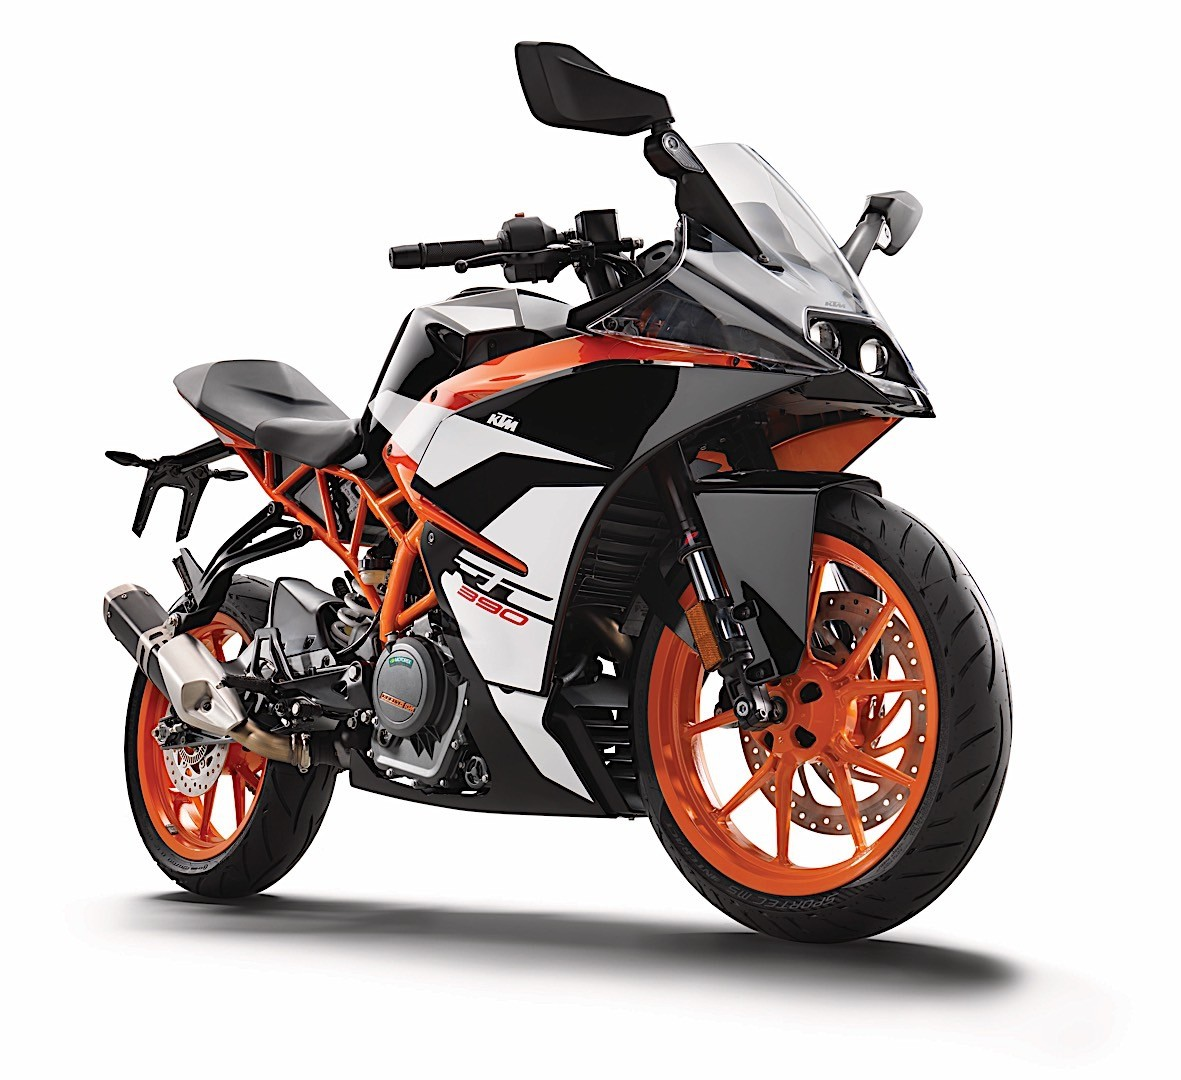 2017 ktm rc 390 major facelift calls to aspiring moto gp. Black Bedroom Furniture Sets. Home Design Ideas